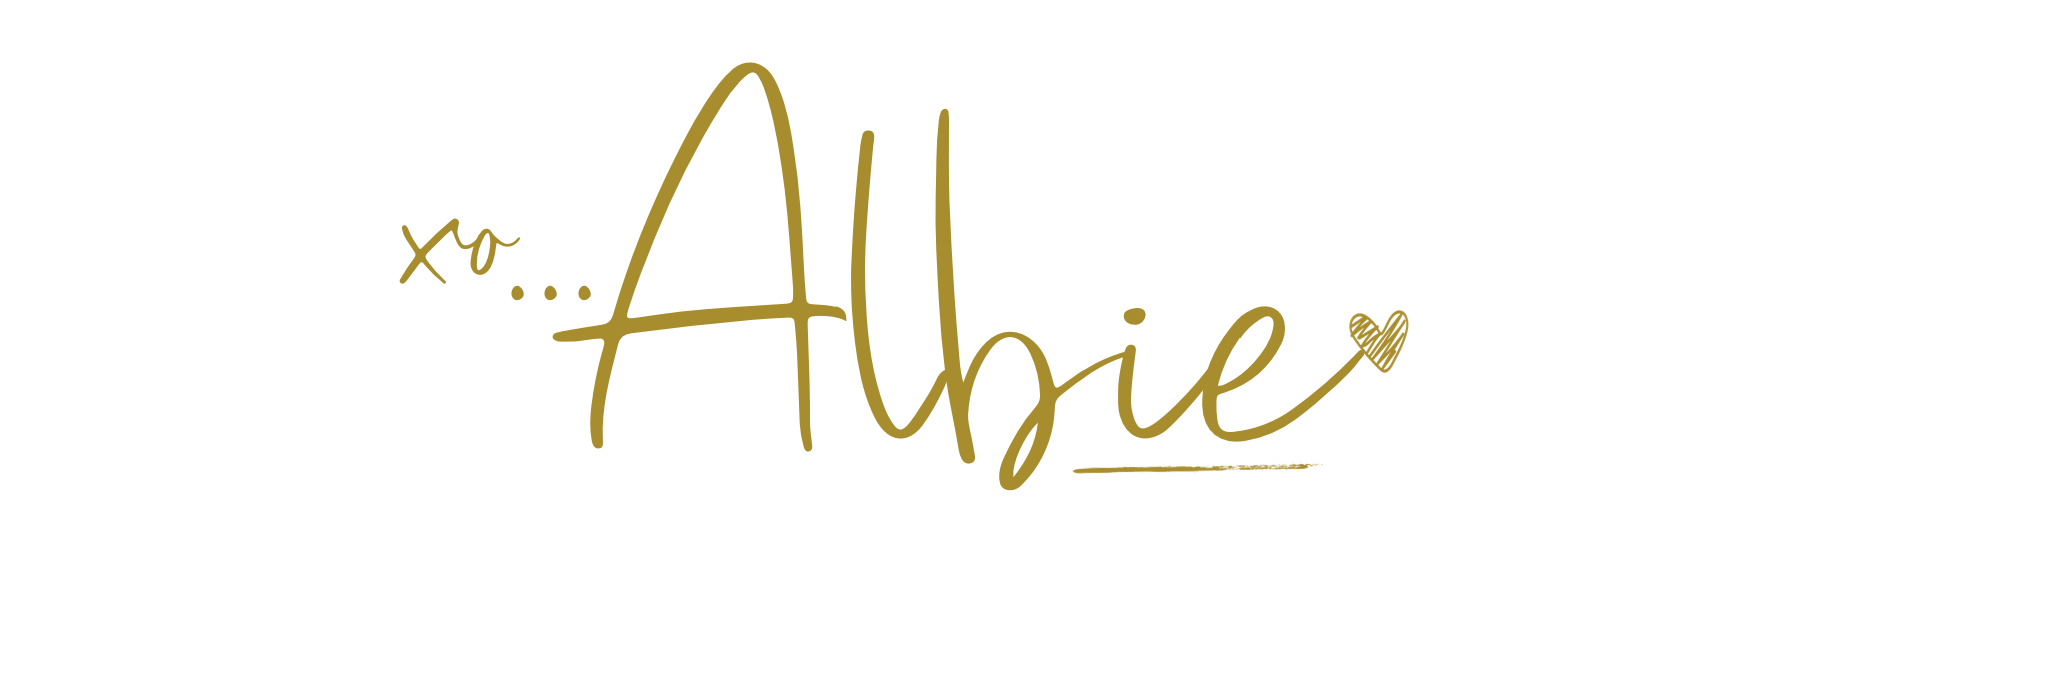 Albie Knows Logo 1.PNG